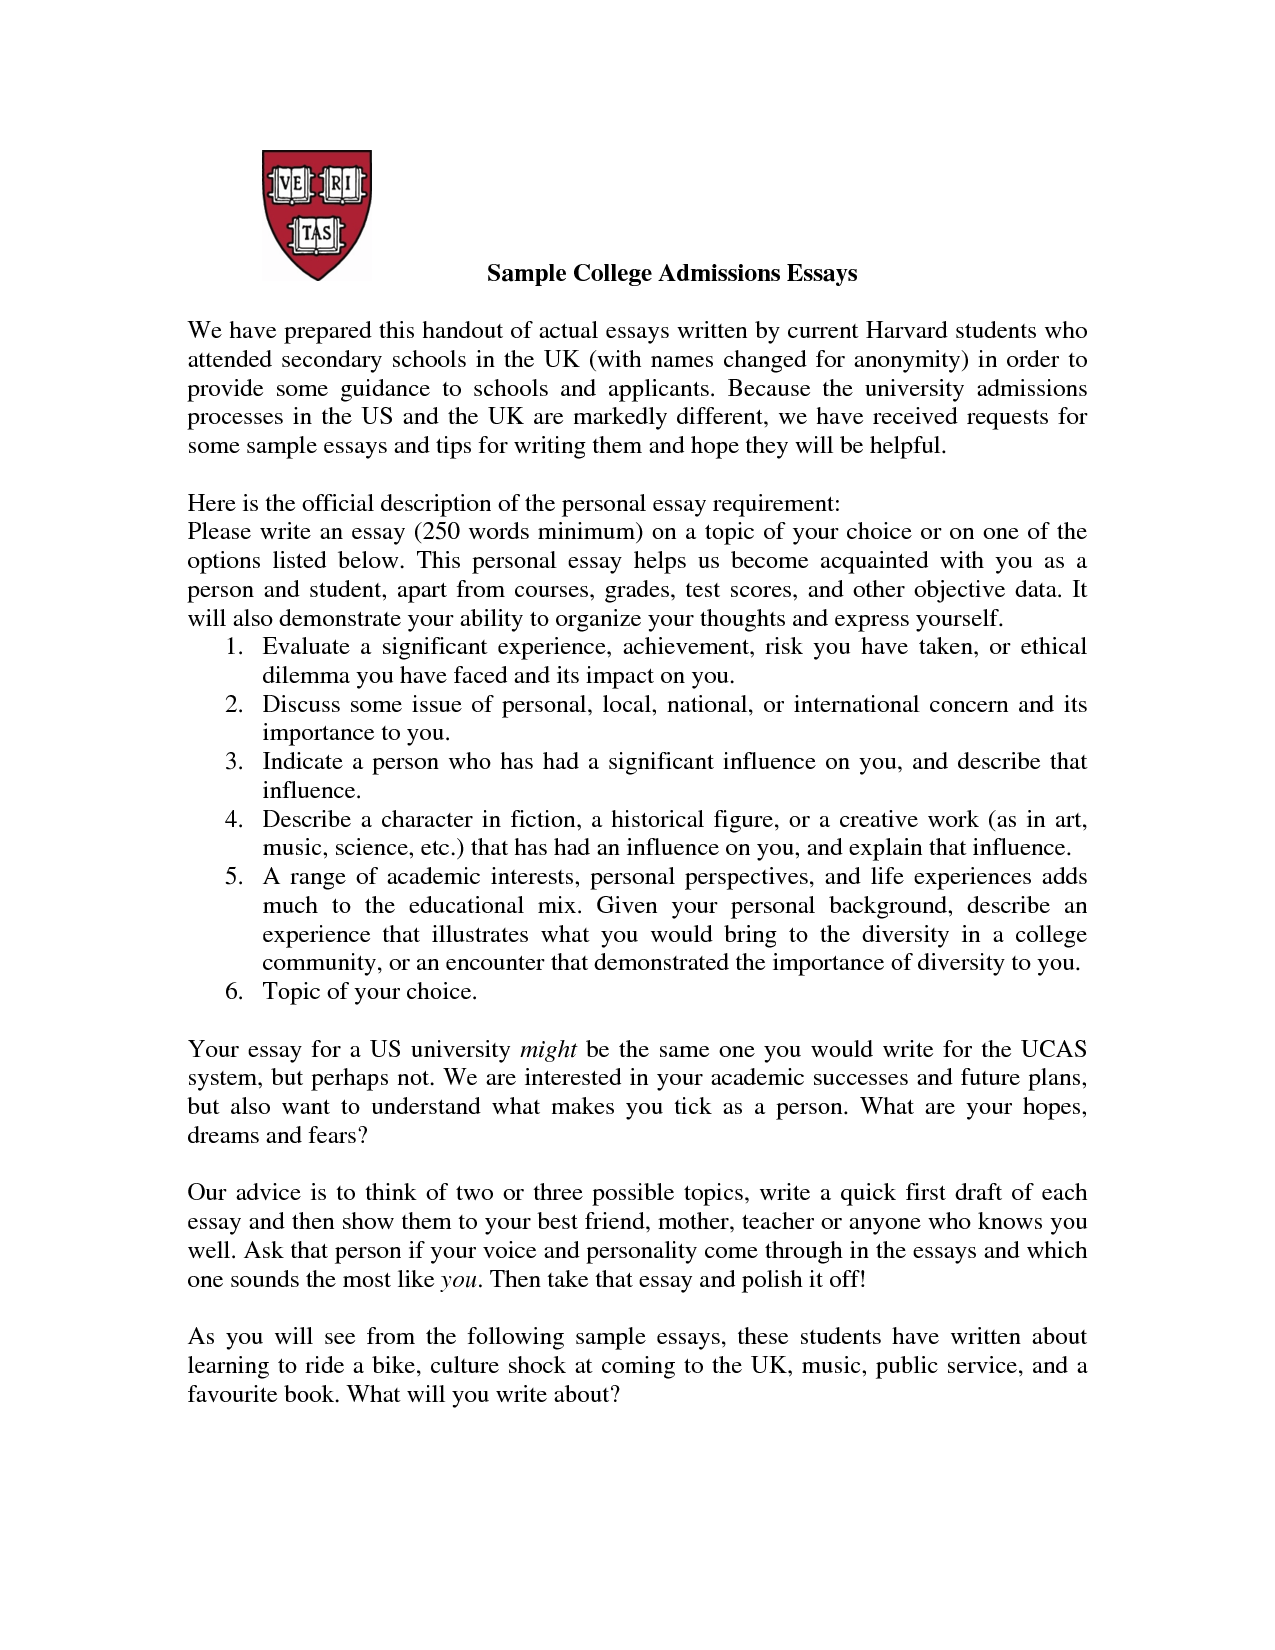 003 Iafr4c5bwr Essay Example Harvard Essays That Staggering Worked University Common App Business School Full